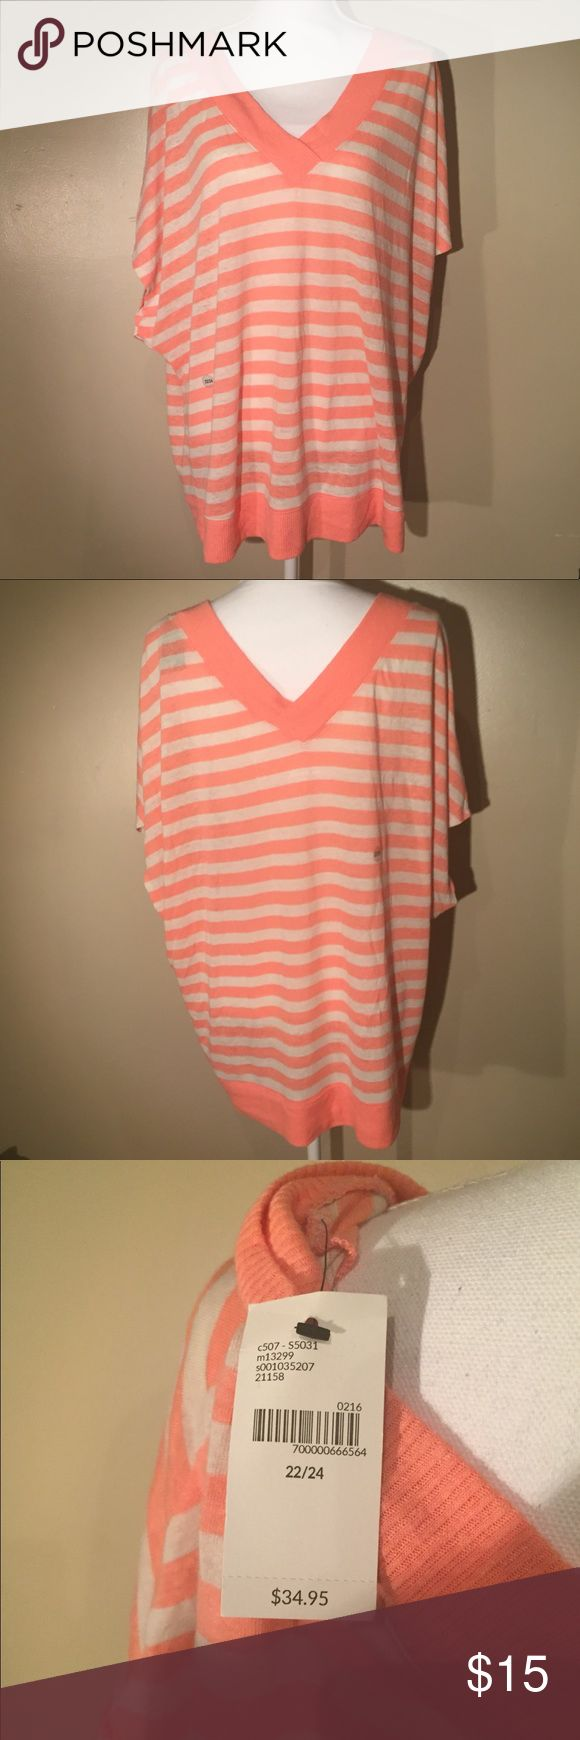 Striped batwing top Brand new with tags white and pink striped batwing top. V front and back. Banded bottom Lane Bryant Sweaters V-Necks